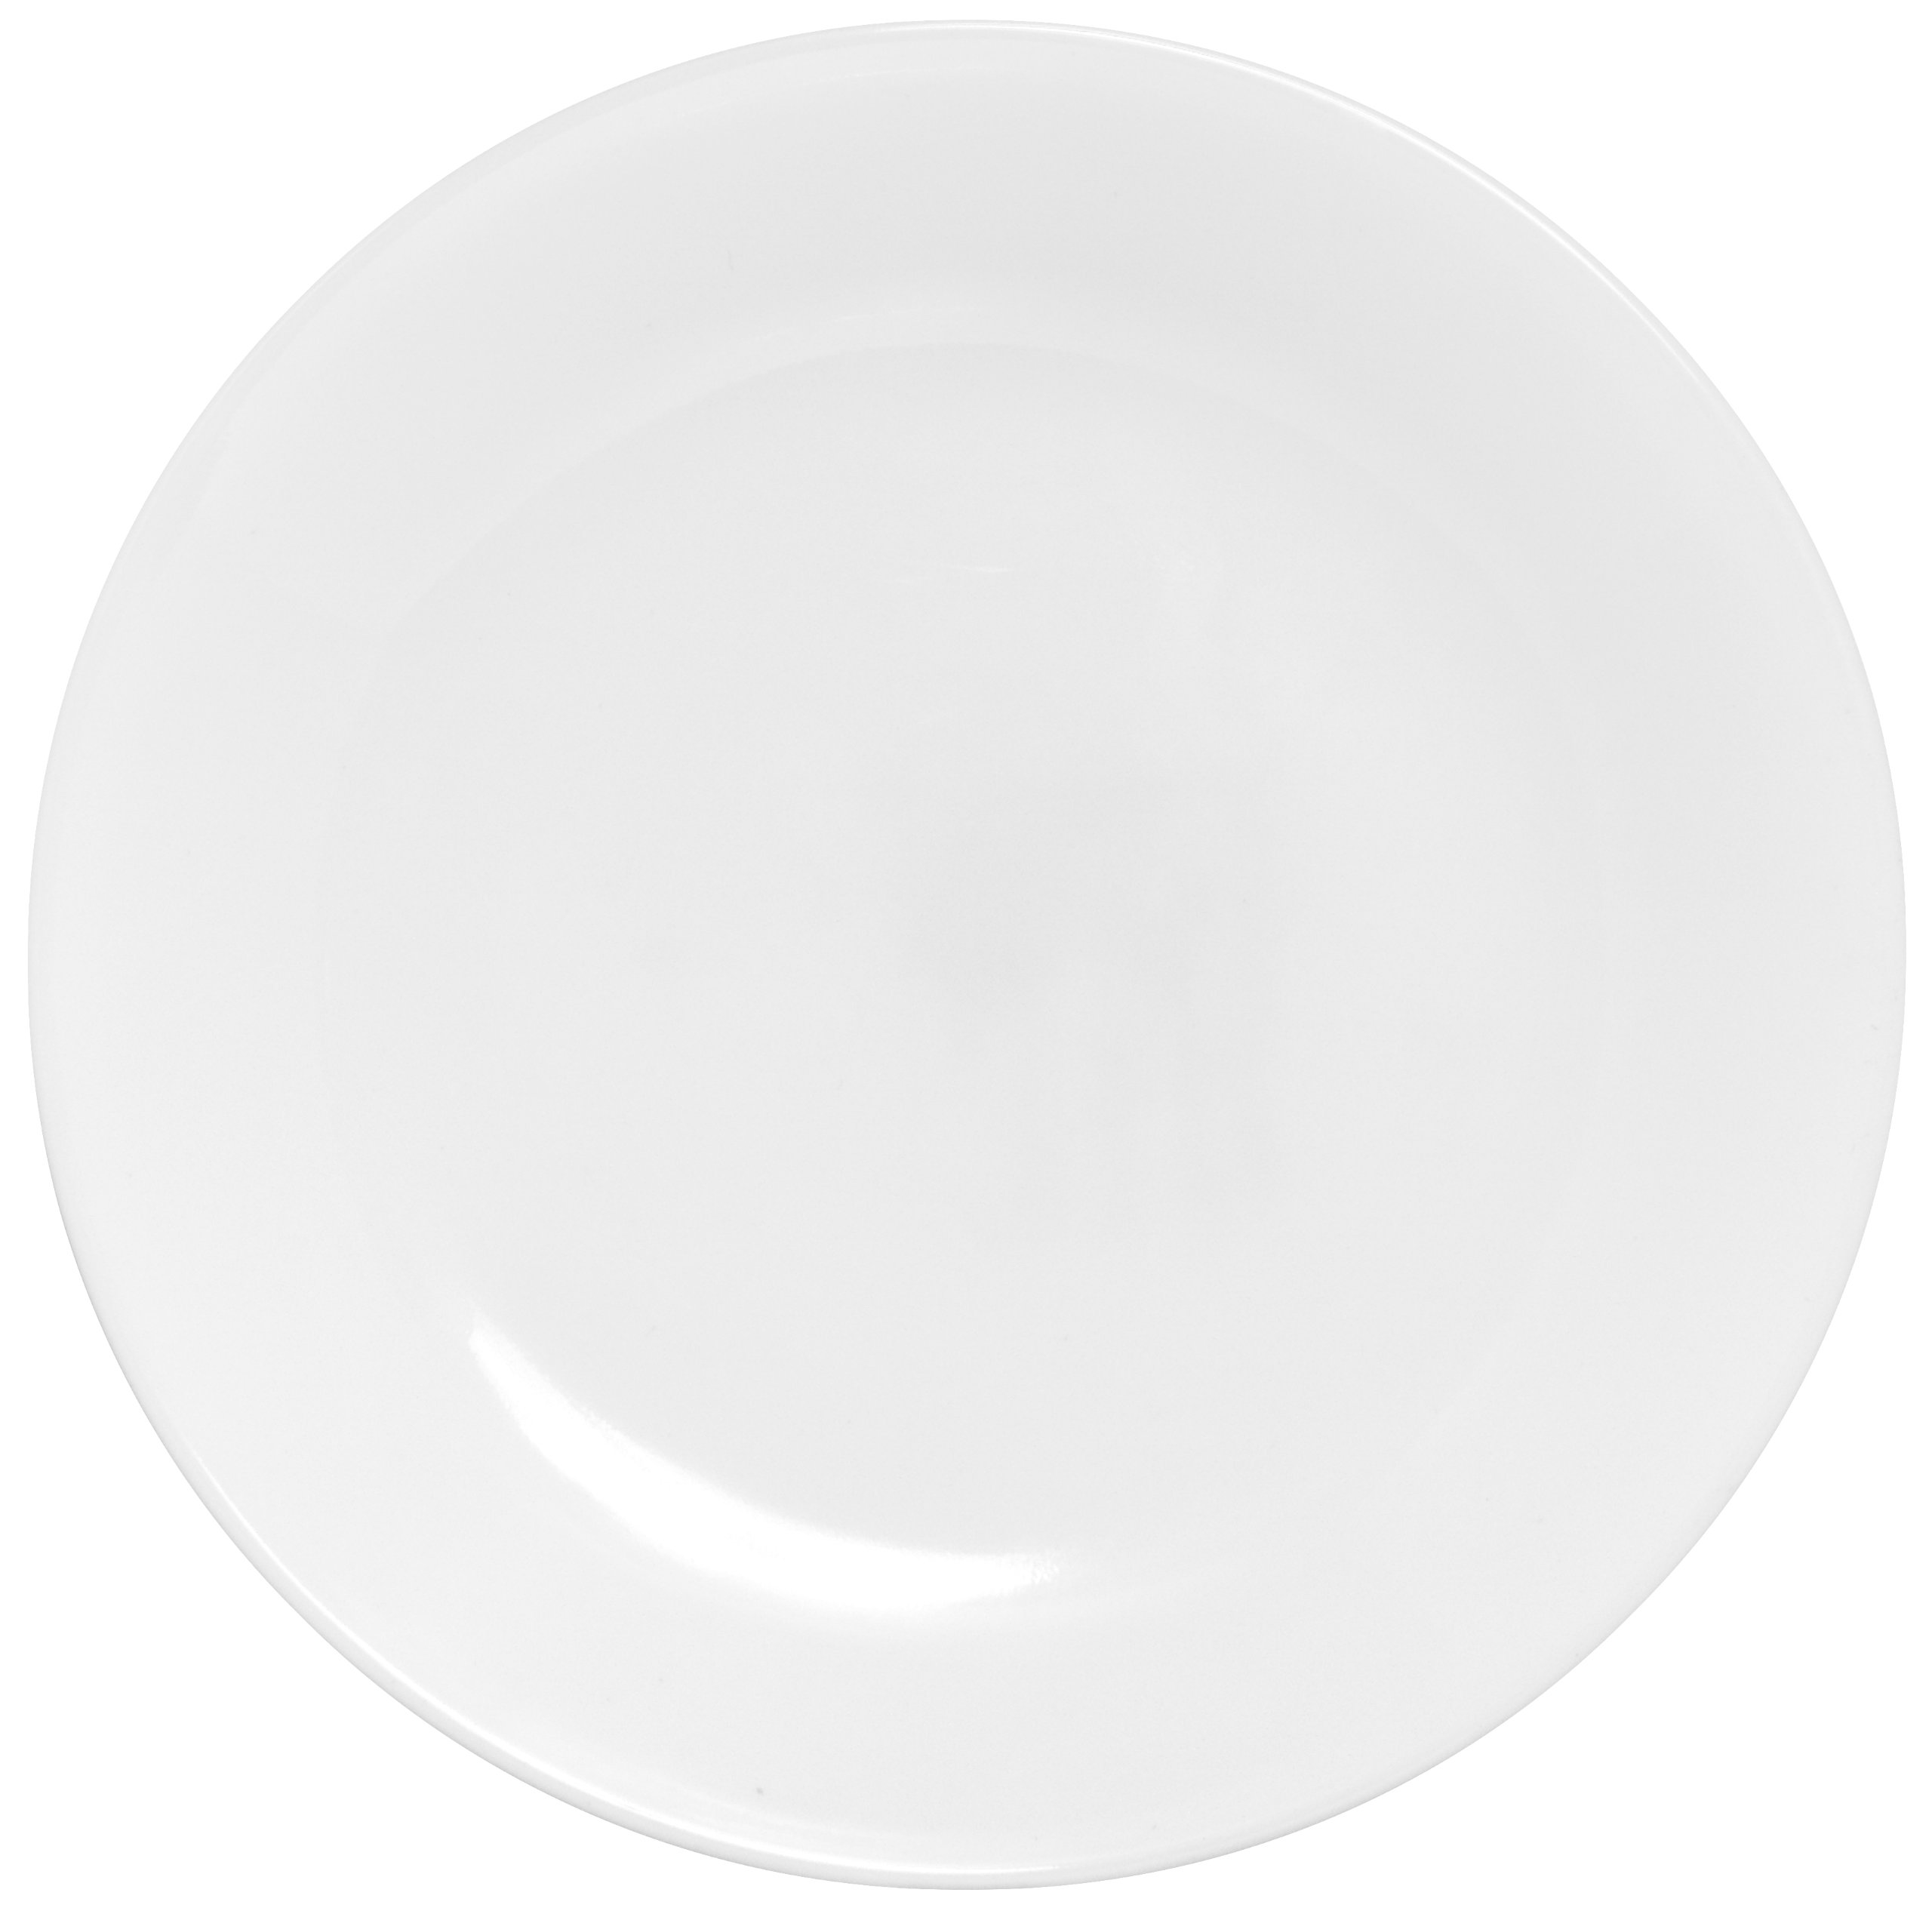 Corelle Winter Frost White Lunch Plates Set (8-1/2-Inch, 6-Piece, White) by Corelle (Image #1)